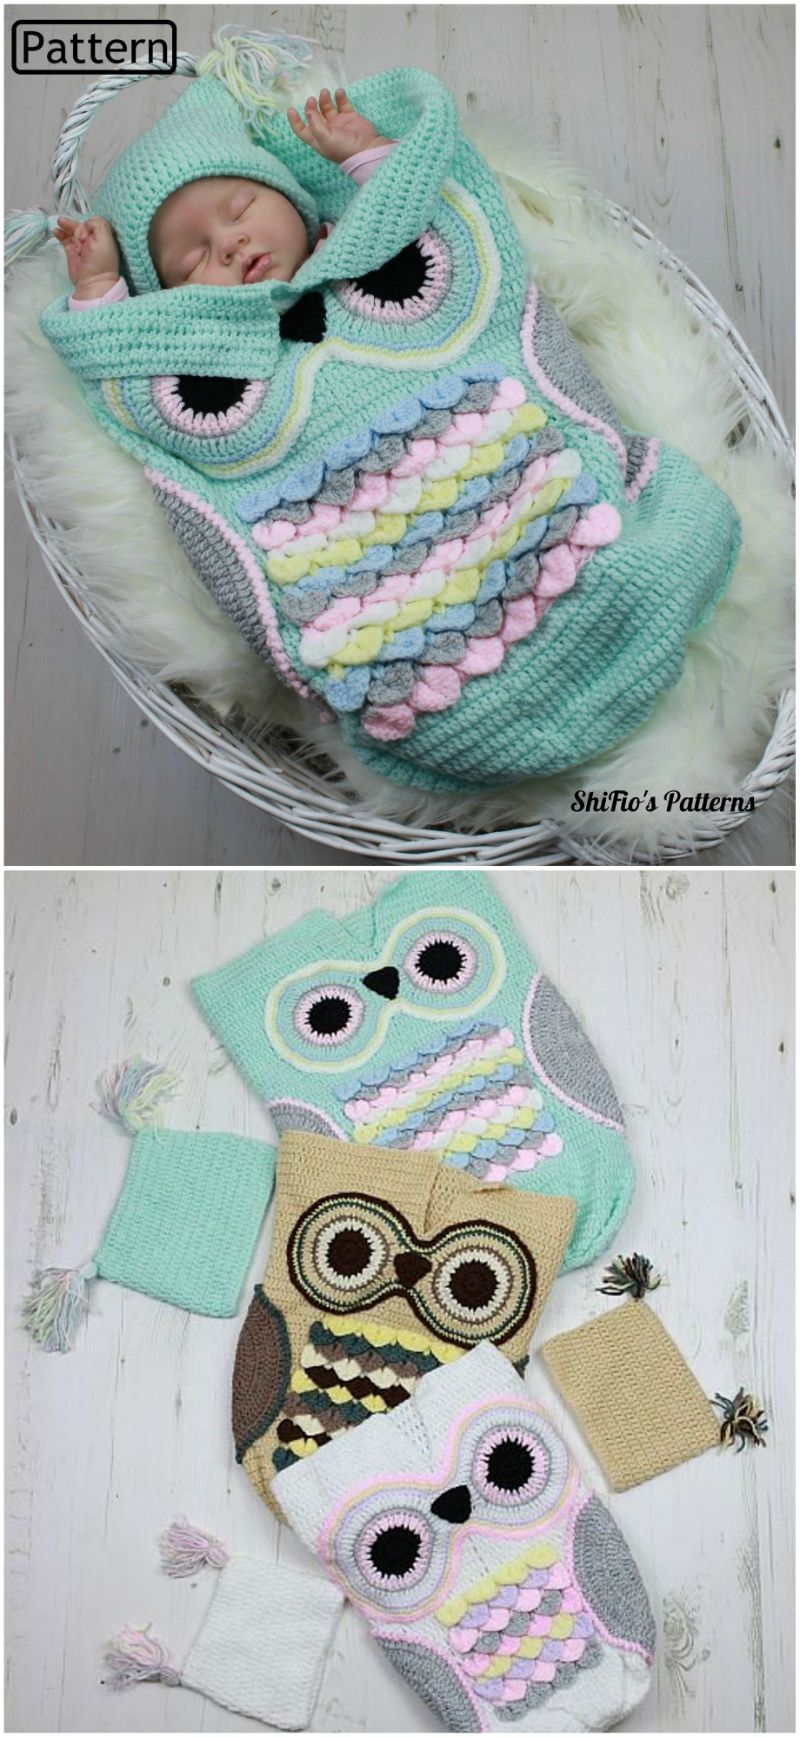 Crochet Baby Cocoons All The Cutest Ideas You'll Love #crochetbabycocoon